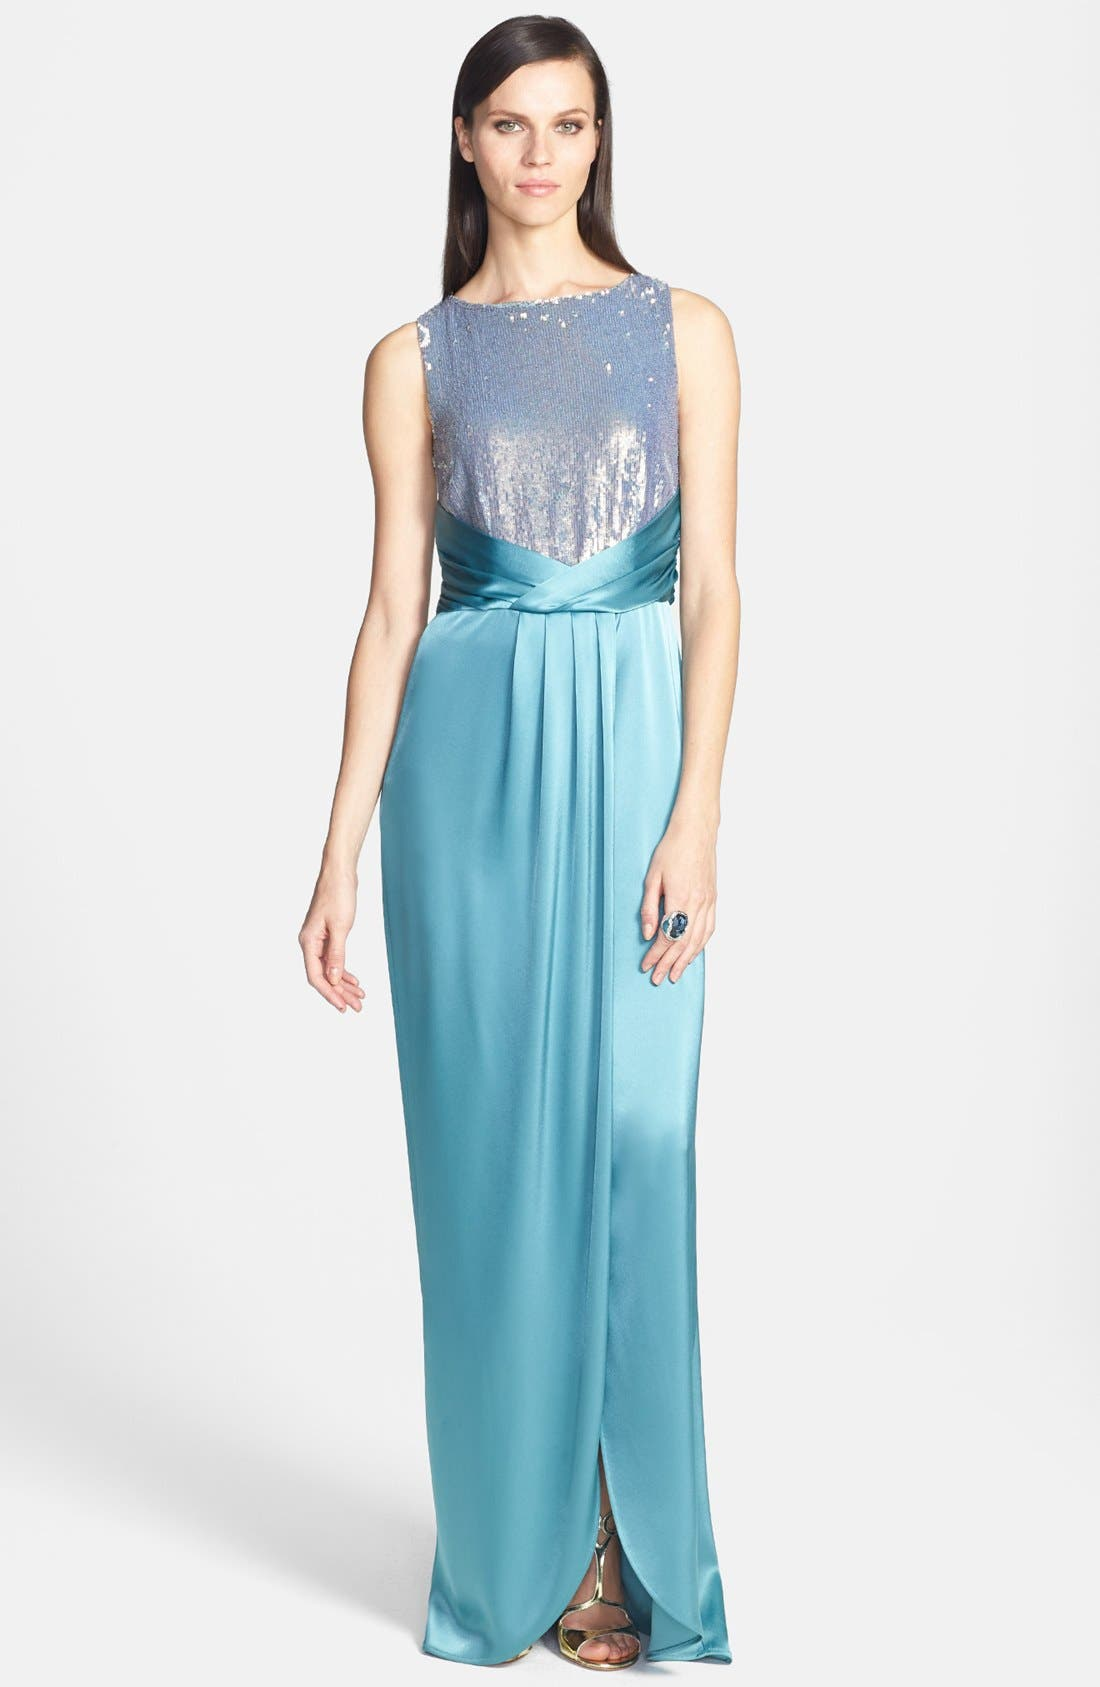 Alternate Image 1 Selected - St. John Collection Sequin Bodice Liquid Satin Gown with Train